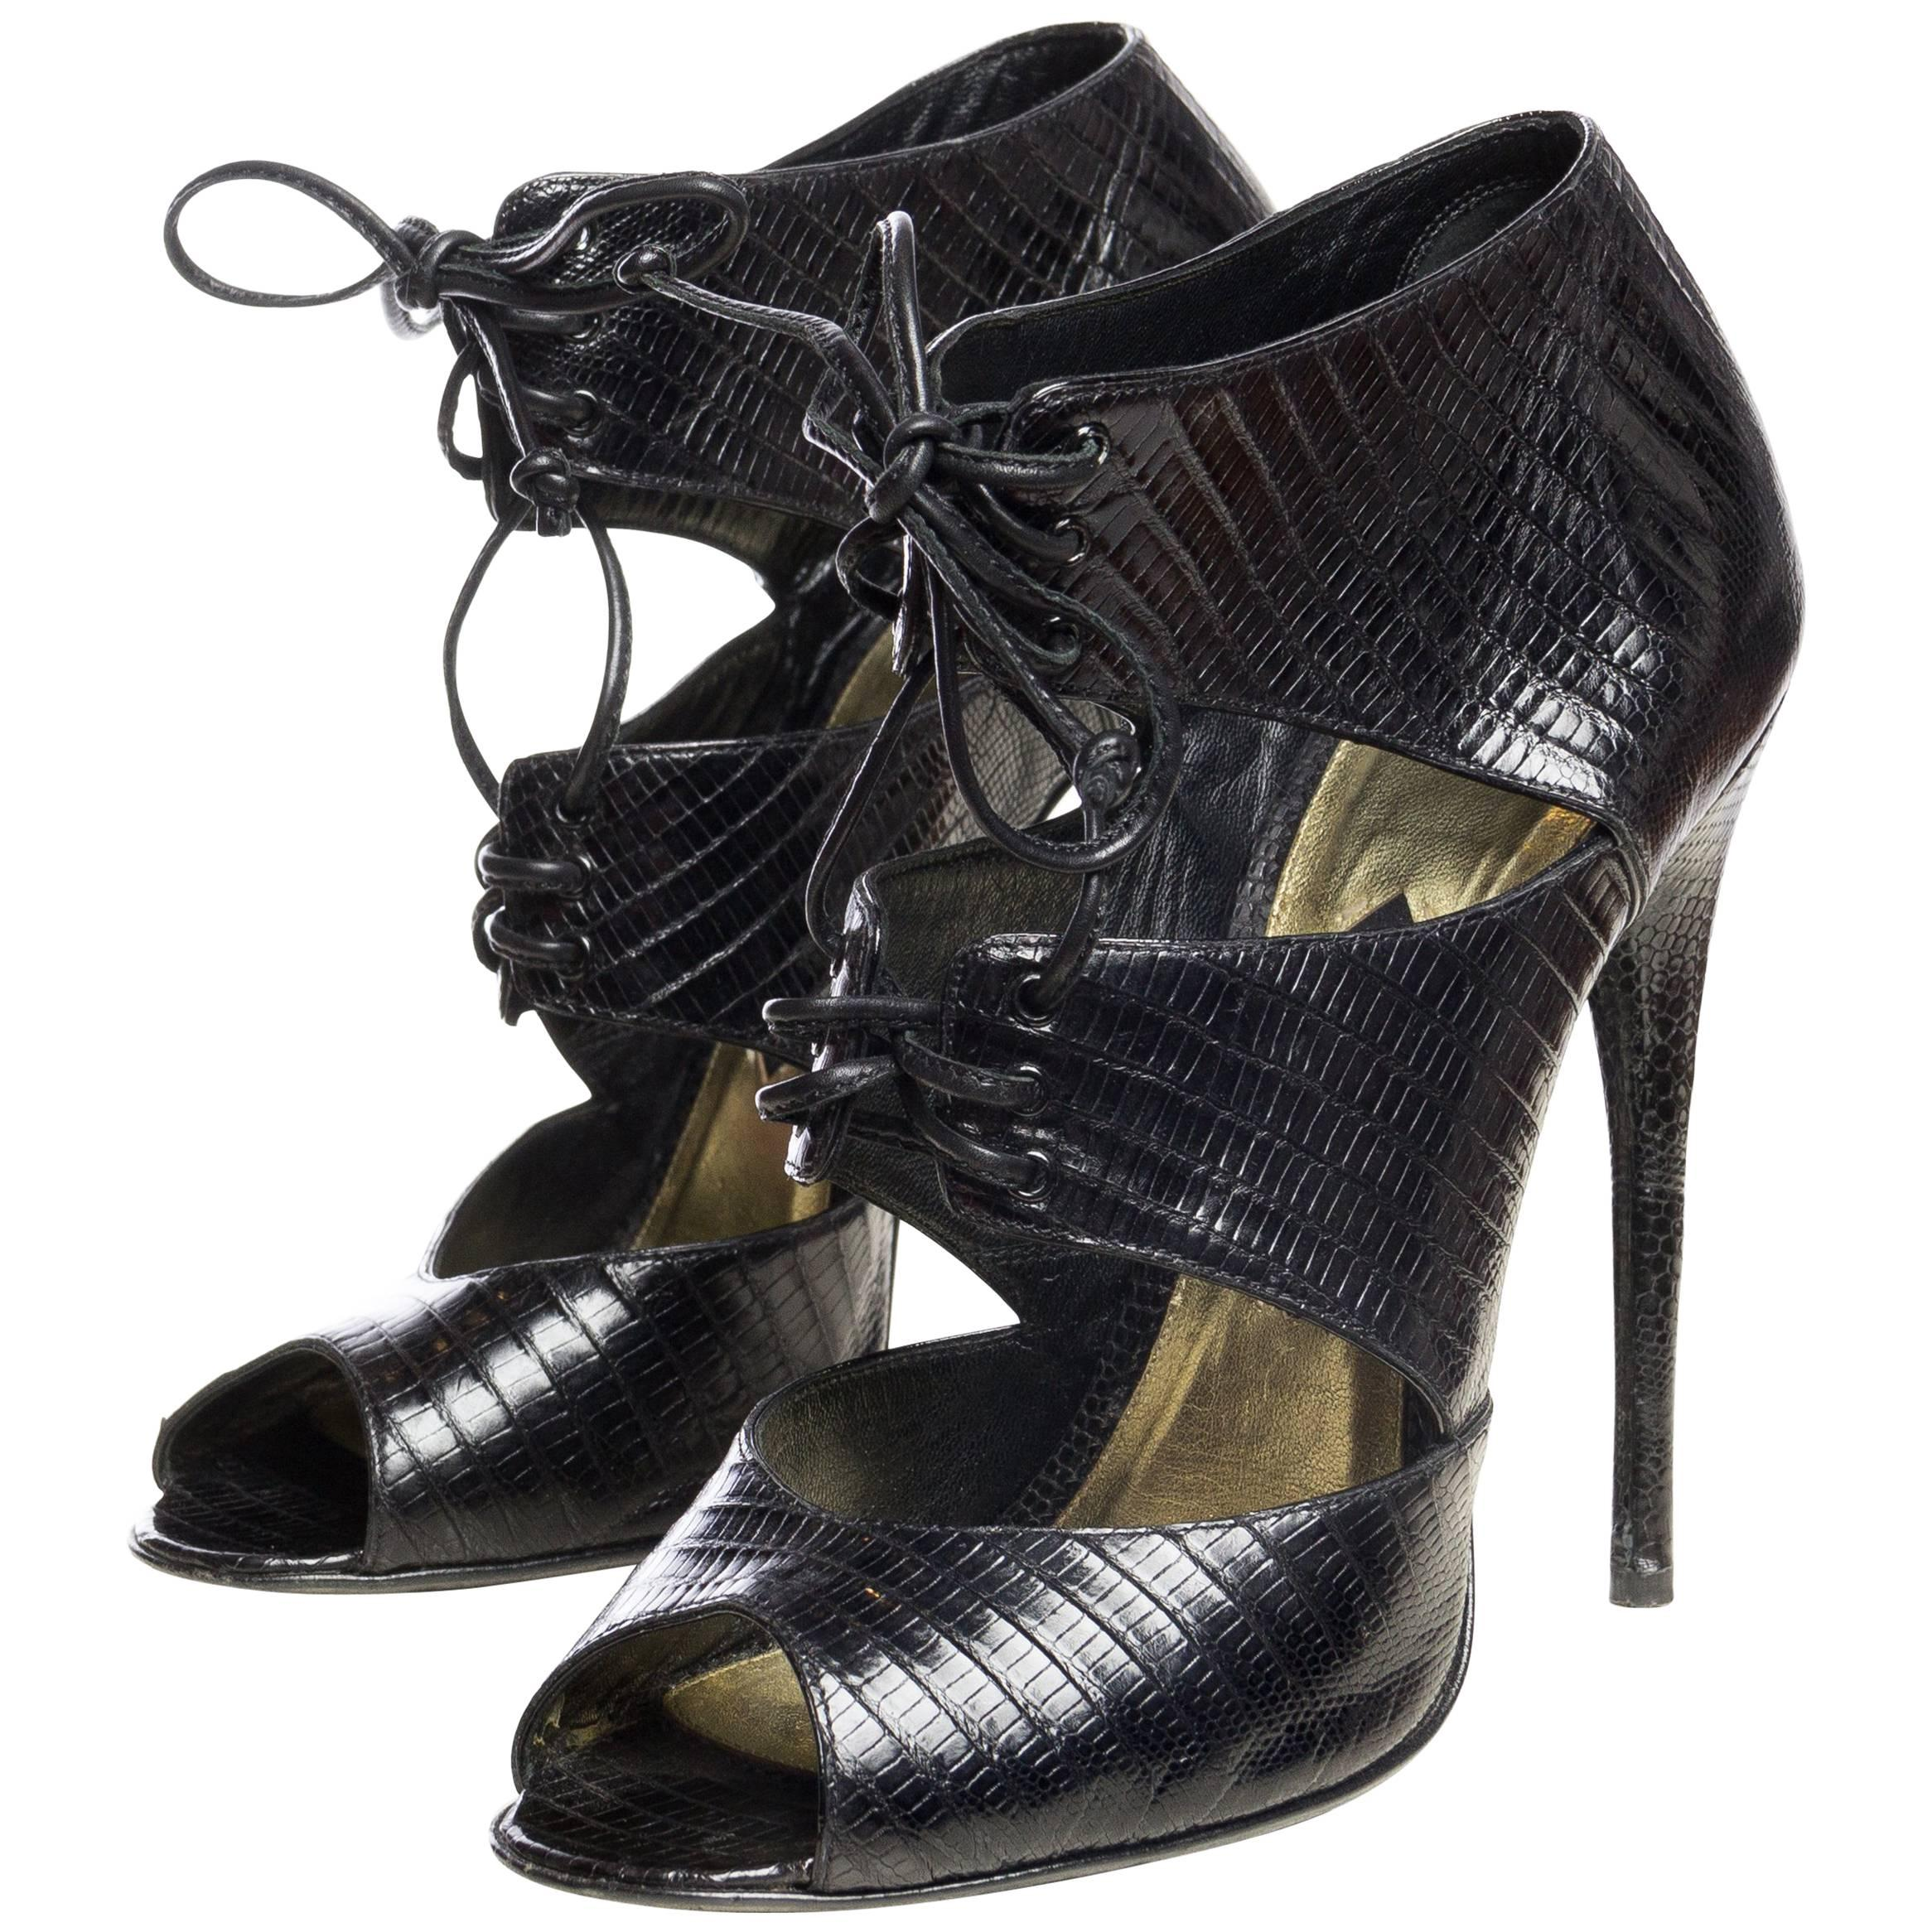 cfbff4611b6 BRAND NEW! TOM FORD for GUCCI BLACK SATIN CORSET SHOES at 1stdibs